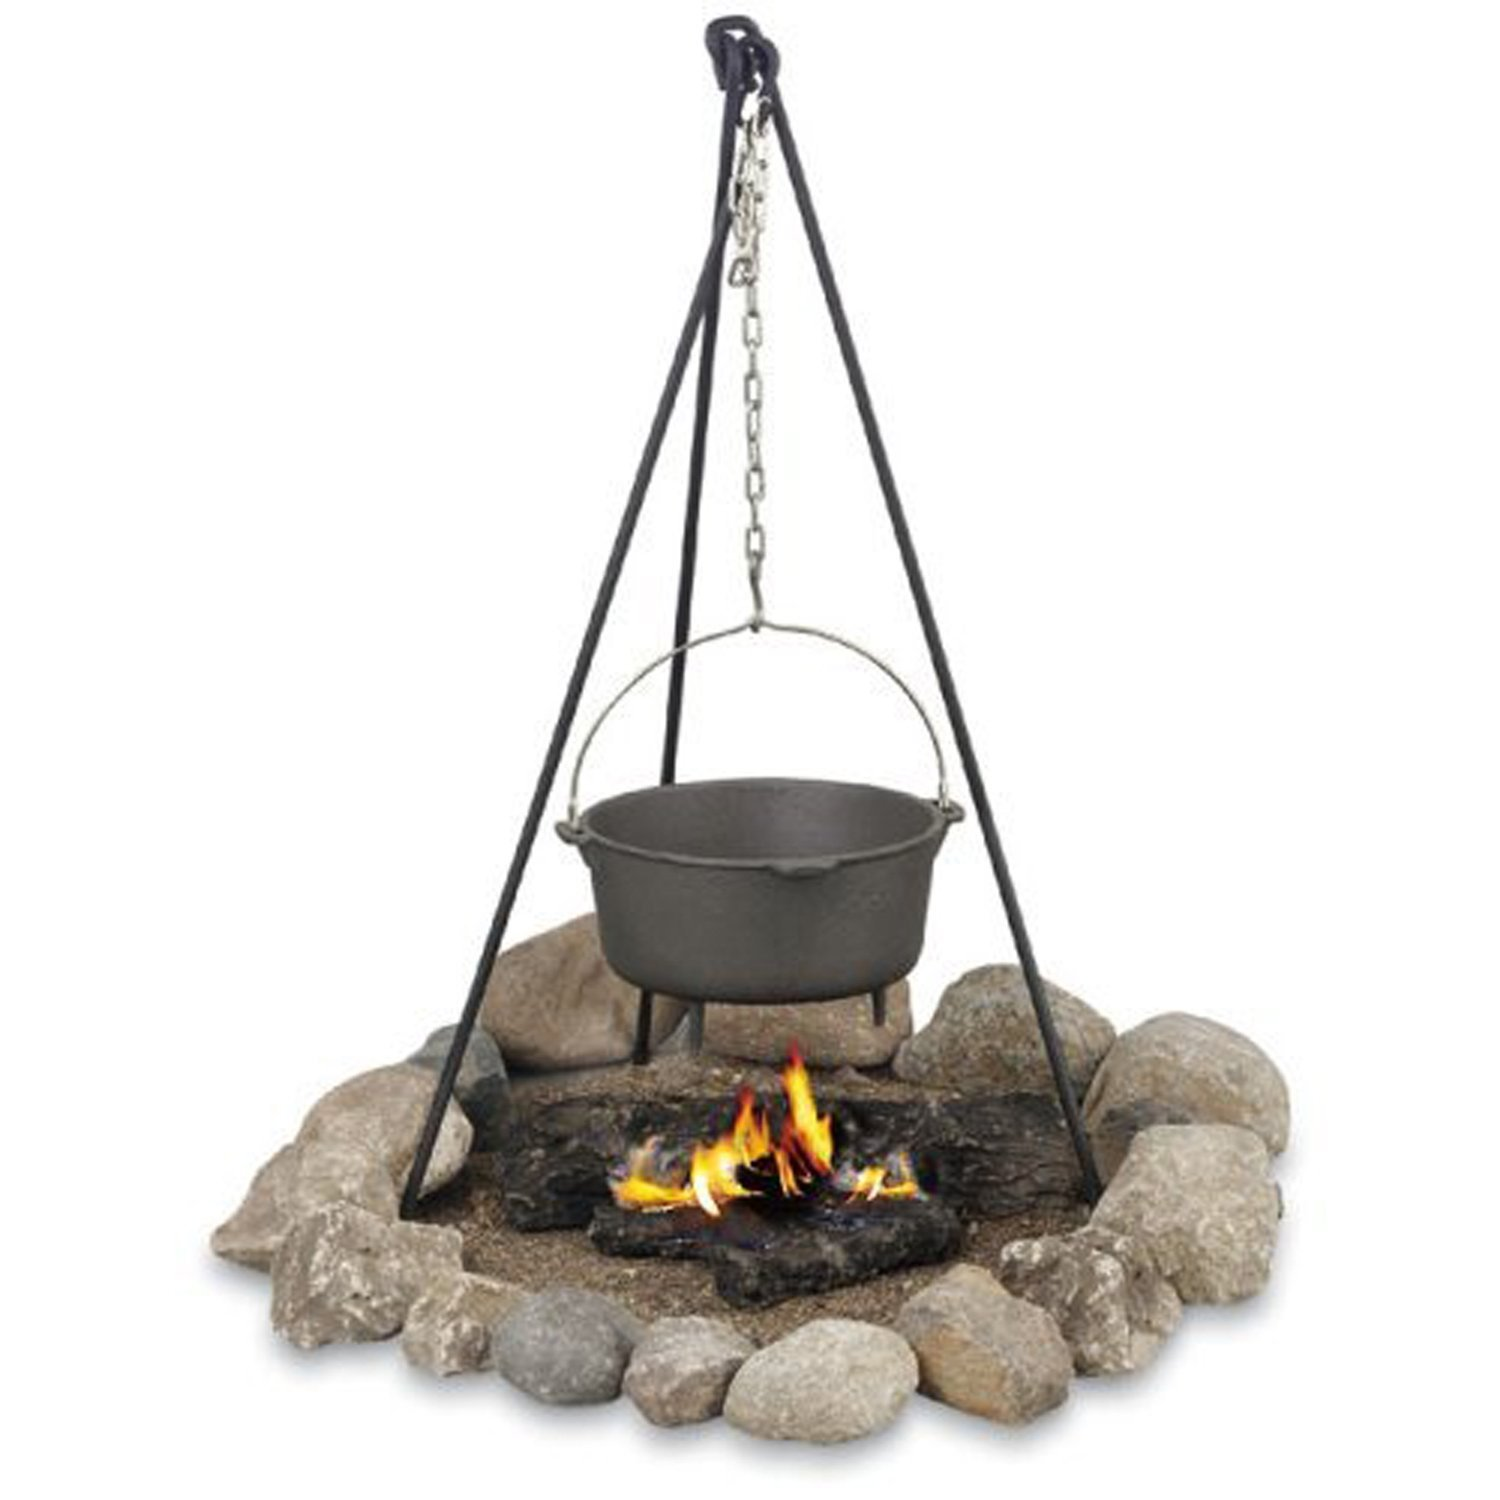 Campfire Cooking Equipment And Dutch Oven Accessories - Texsport Deluxe Campfire Cooking Tripod